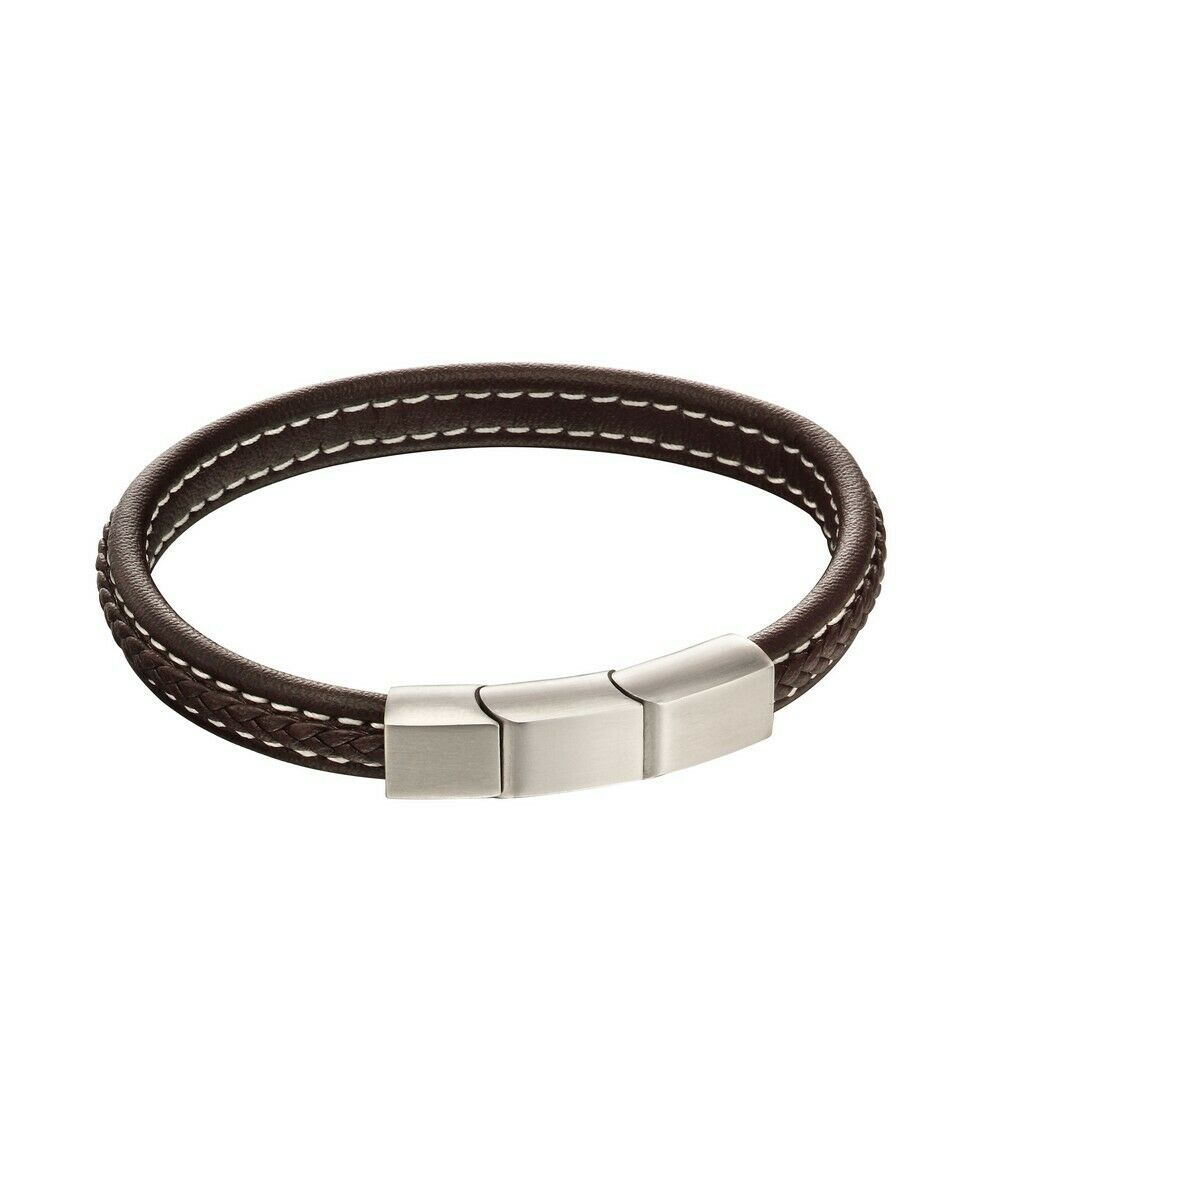 Fred Bennett Plait Mixed Brushed Finish Brown Leather Bracelet B5120